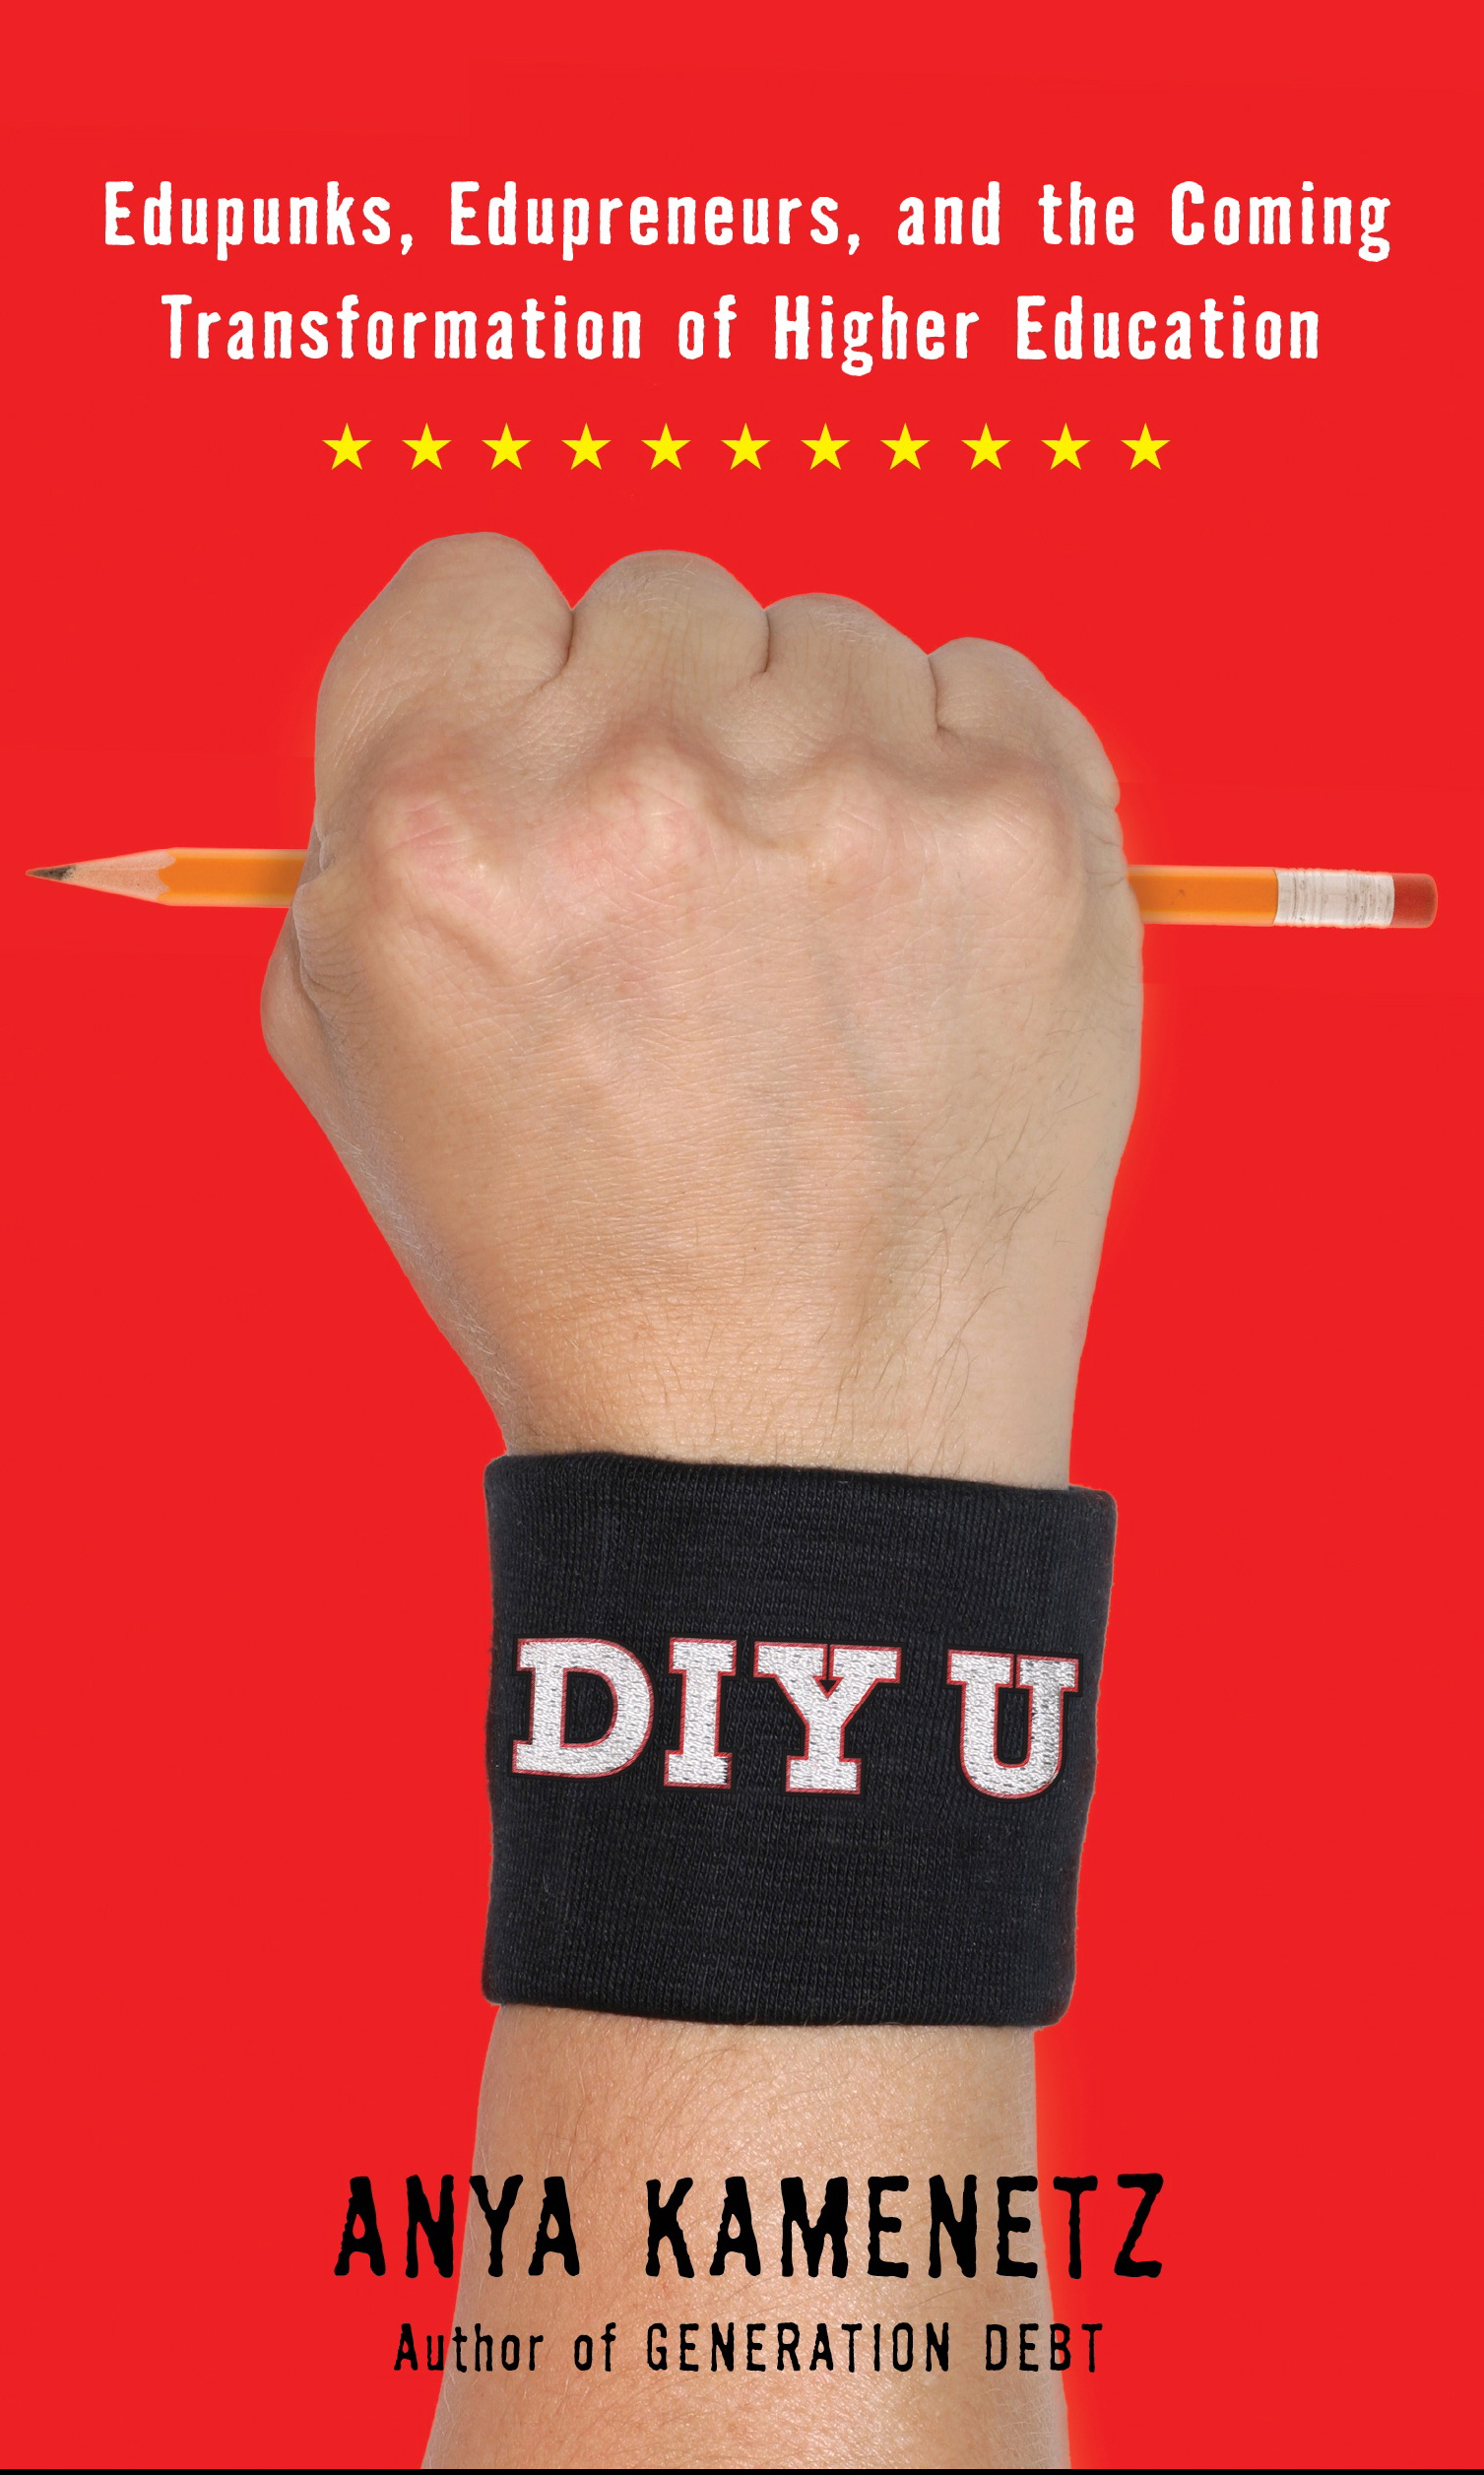 DIY U: Edupunks, Edupreneurs, and the Coming Transformation of Higher Education, Kamenetz, Anya